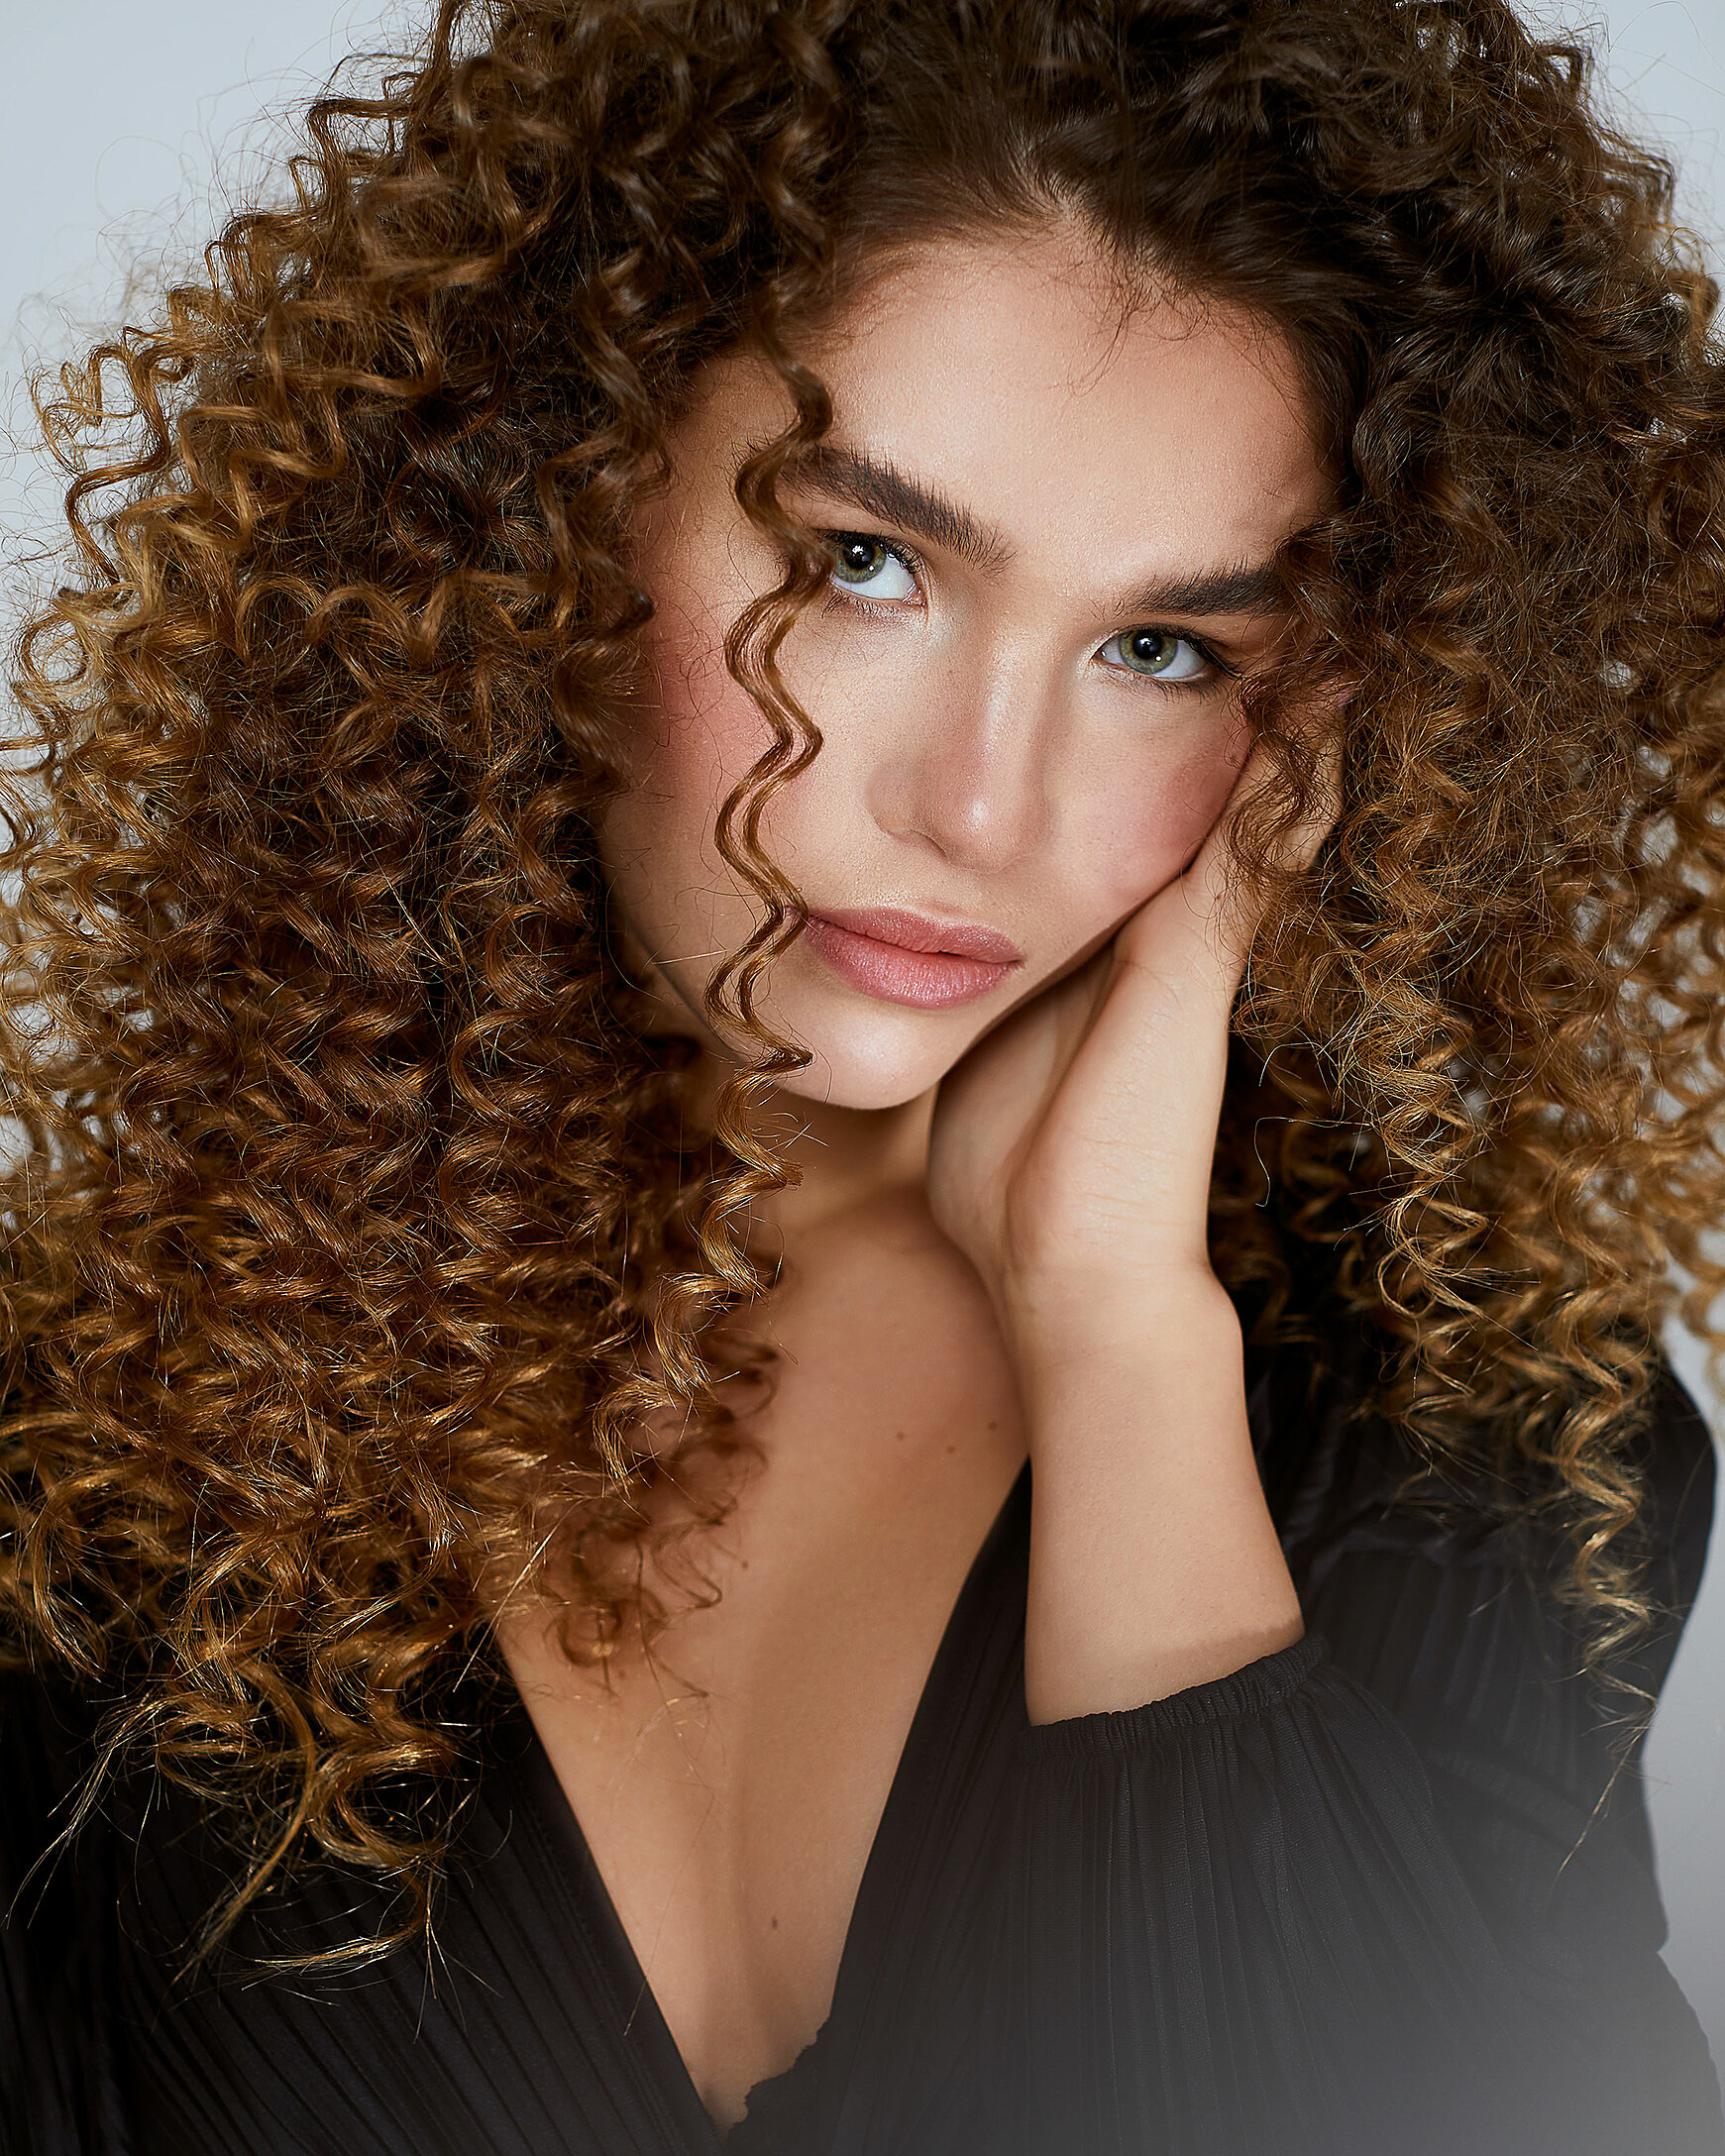 A close-up of a female model with big curly hair and a natural makeup. She wears a black dress with padded shoulders.